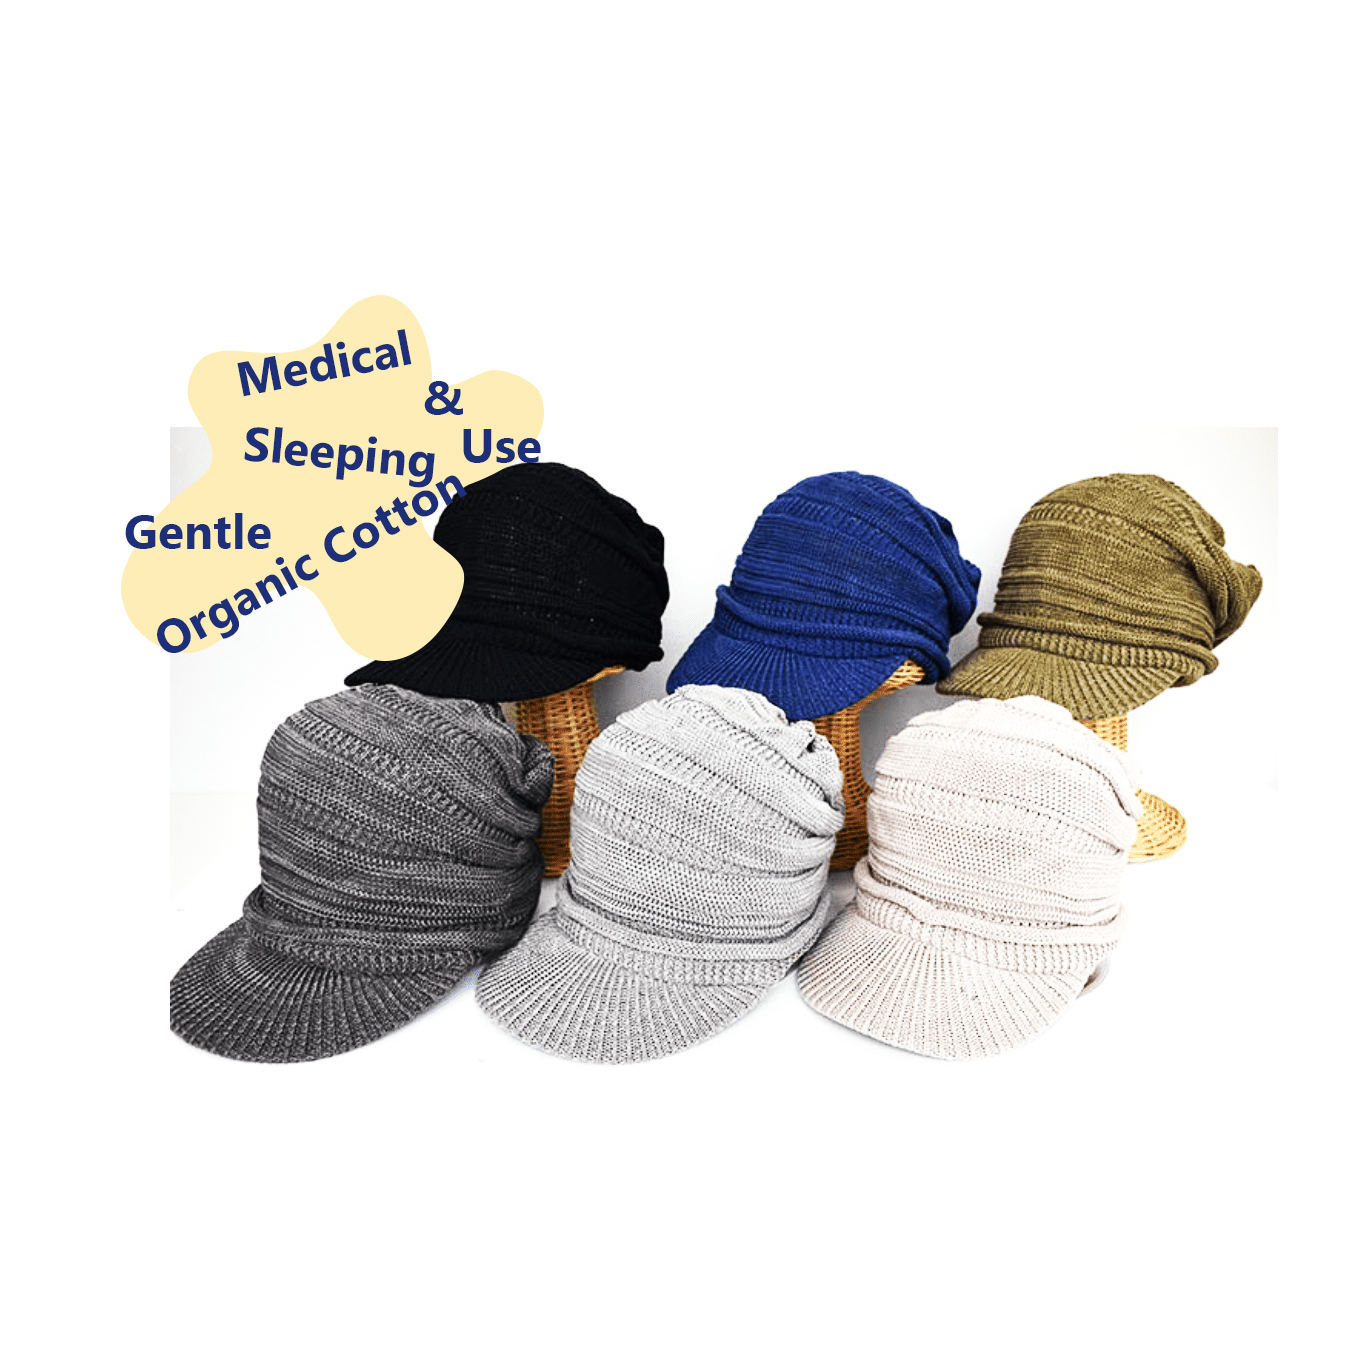 Organic Cotton Knitting kunt Casquette, Cute Hats Japan made